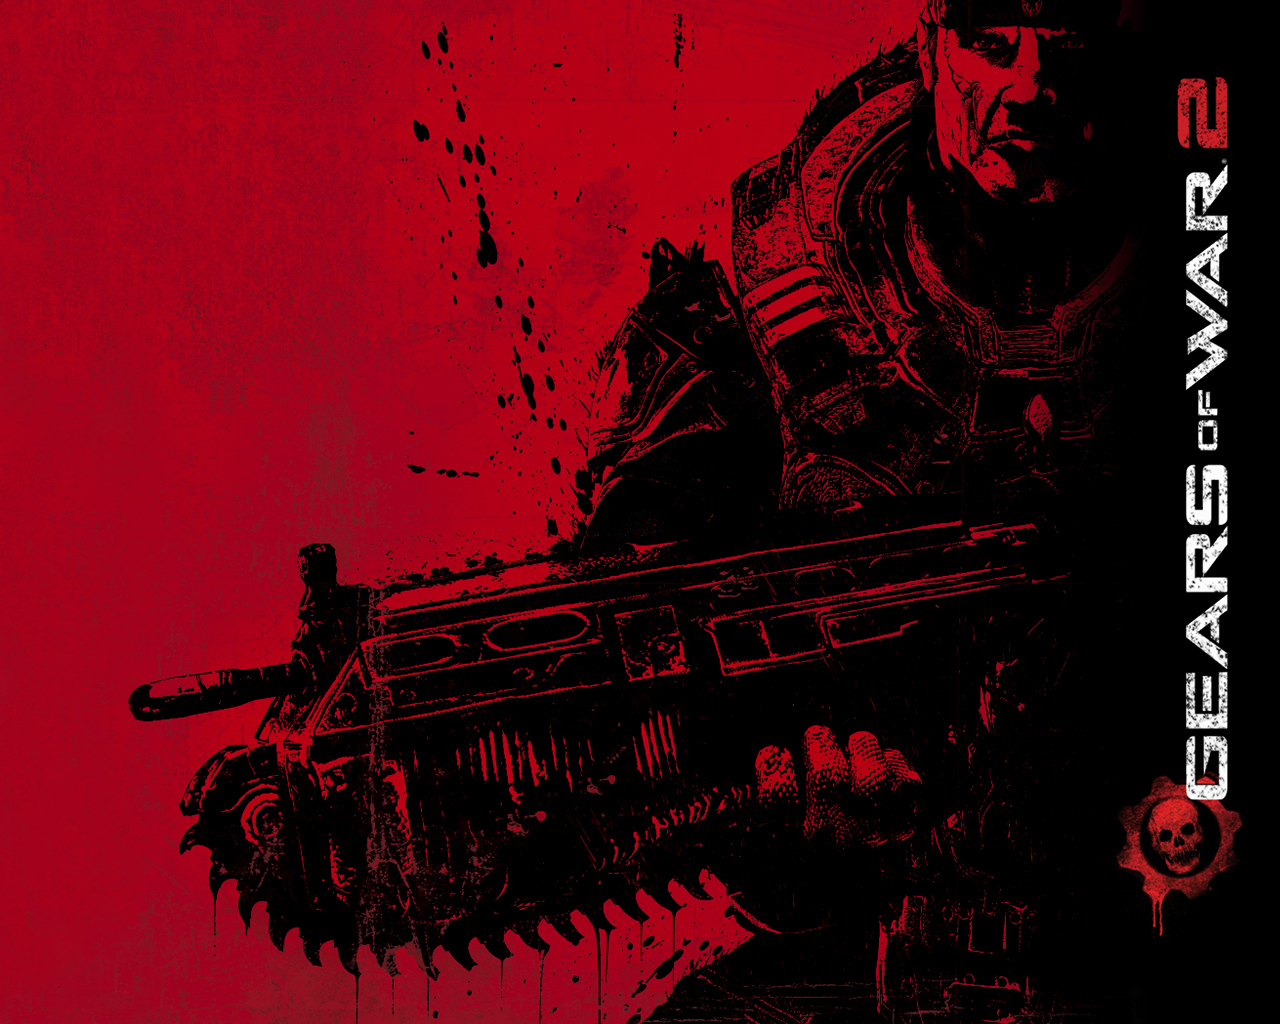 gears of war 2 images marcus hd wallpaper and background photos